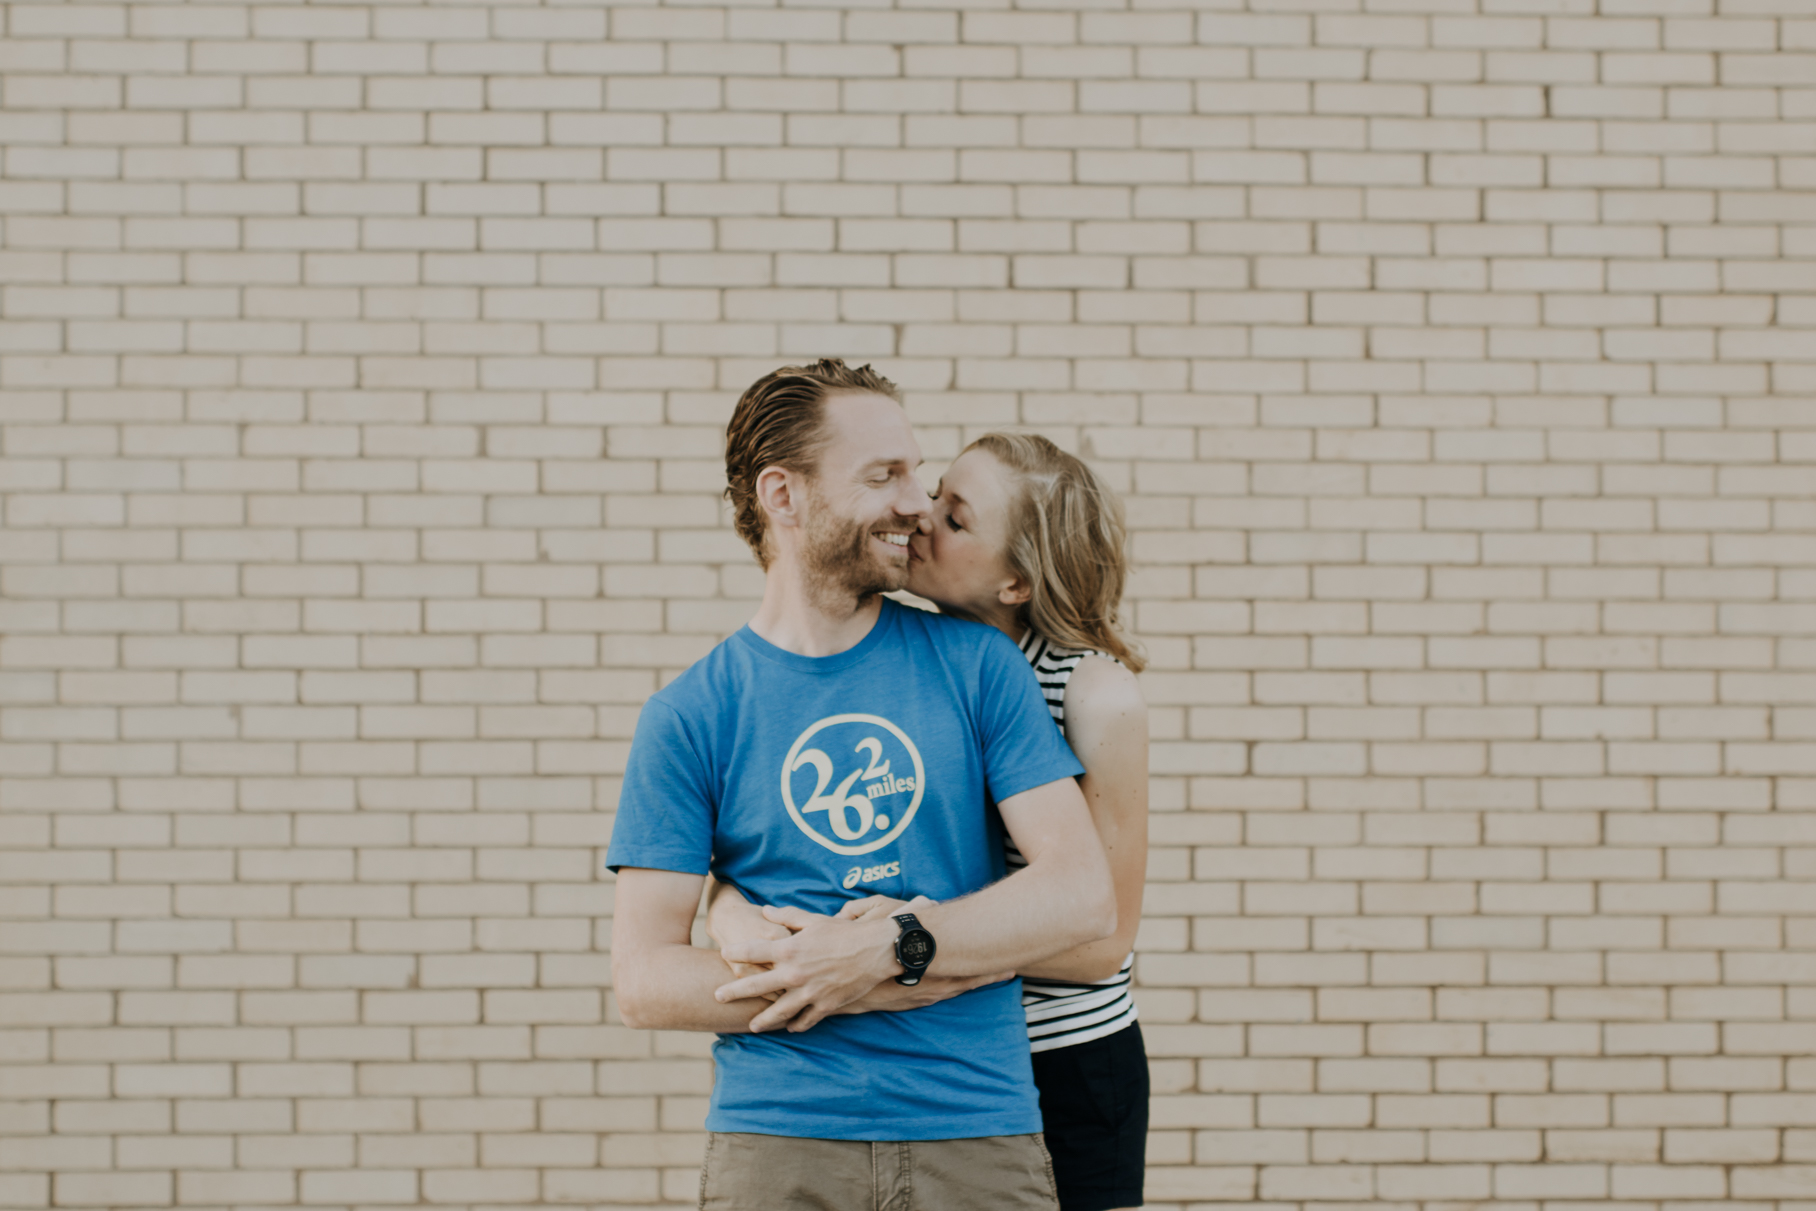 tampa mural shoot | freehearted film co | tampa wedding photography | tampa wedding photographer